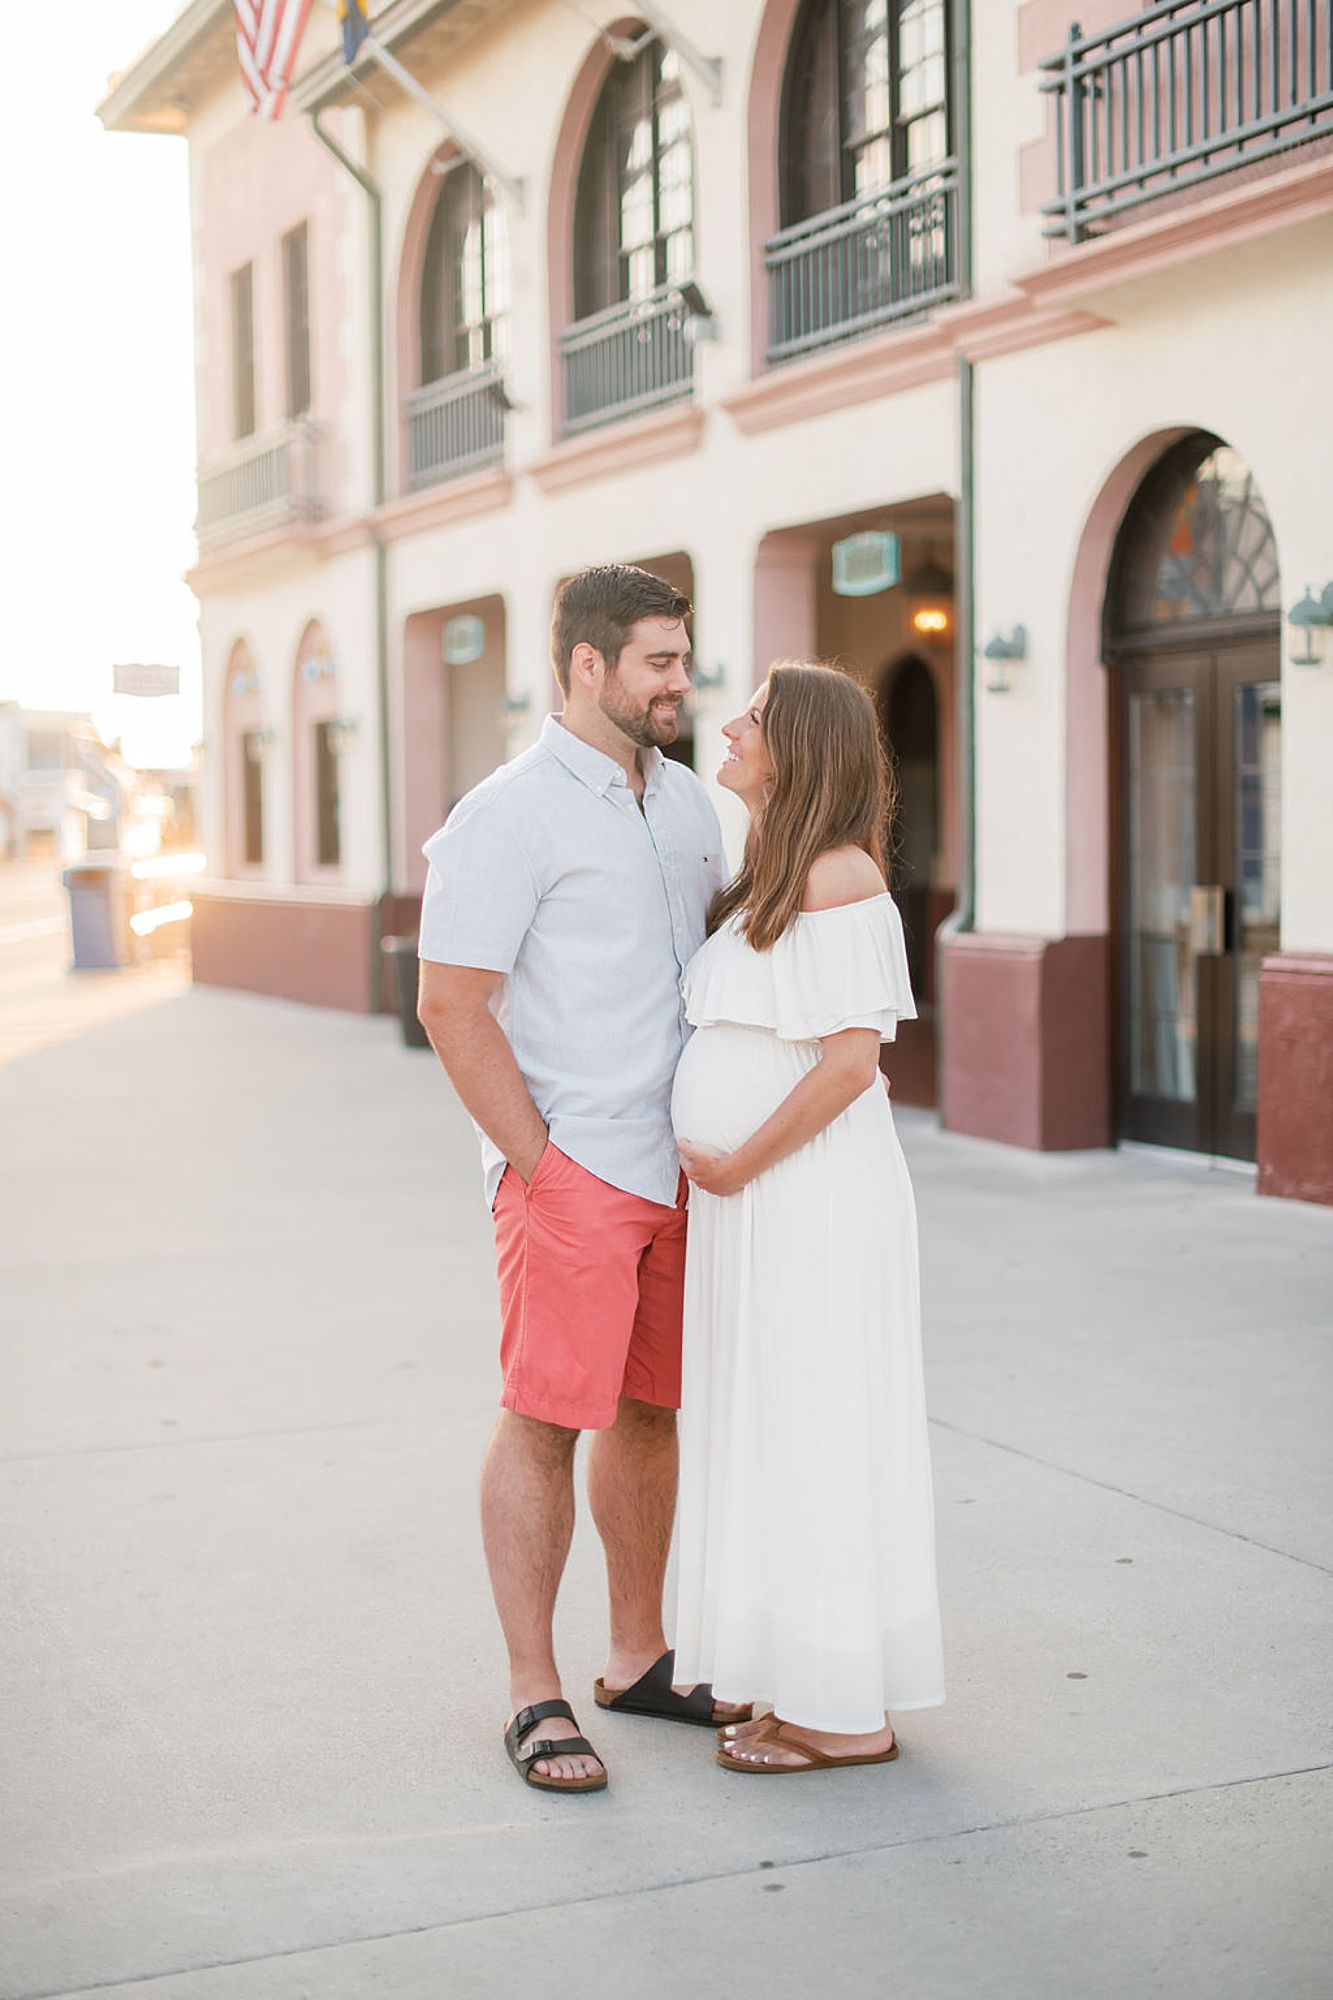 Glowy and Romantic Maternity Photography in Ocean City NJ by Magdalena Studios 0016